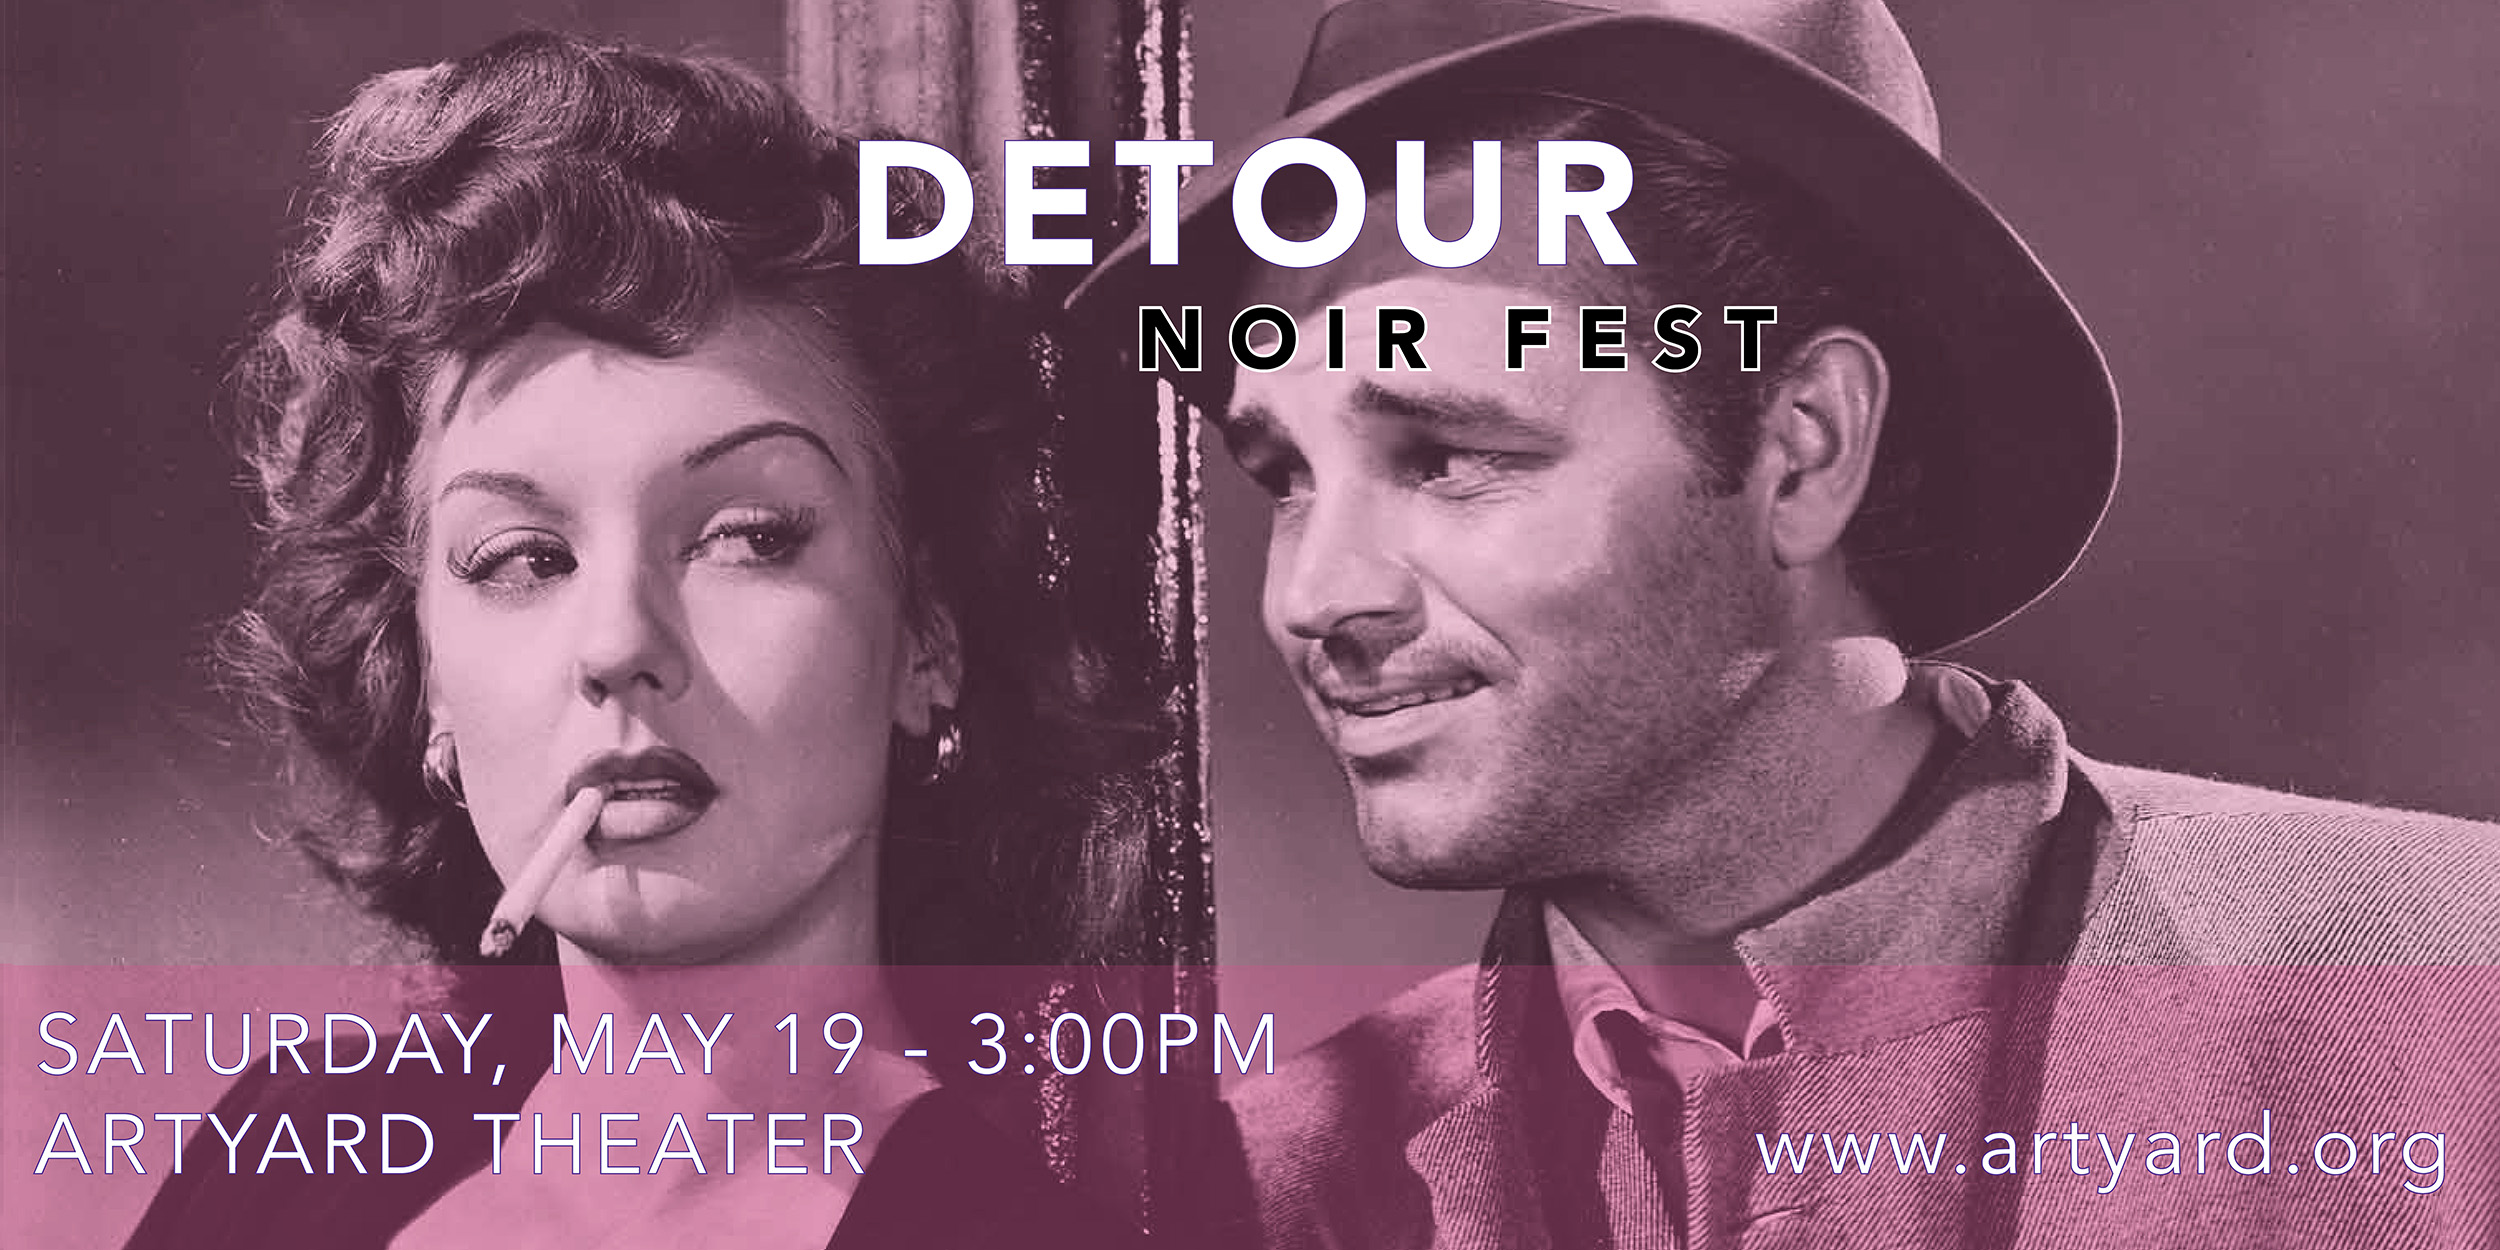 Screening of DETOUR (ArtYard's Noir Fest) @ ArtYard's Theater | Frenchtown | New Jersey | United States